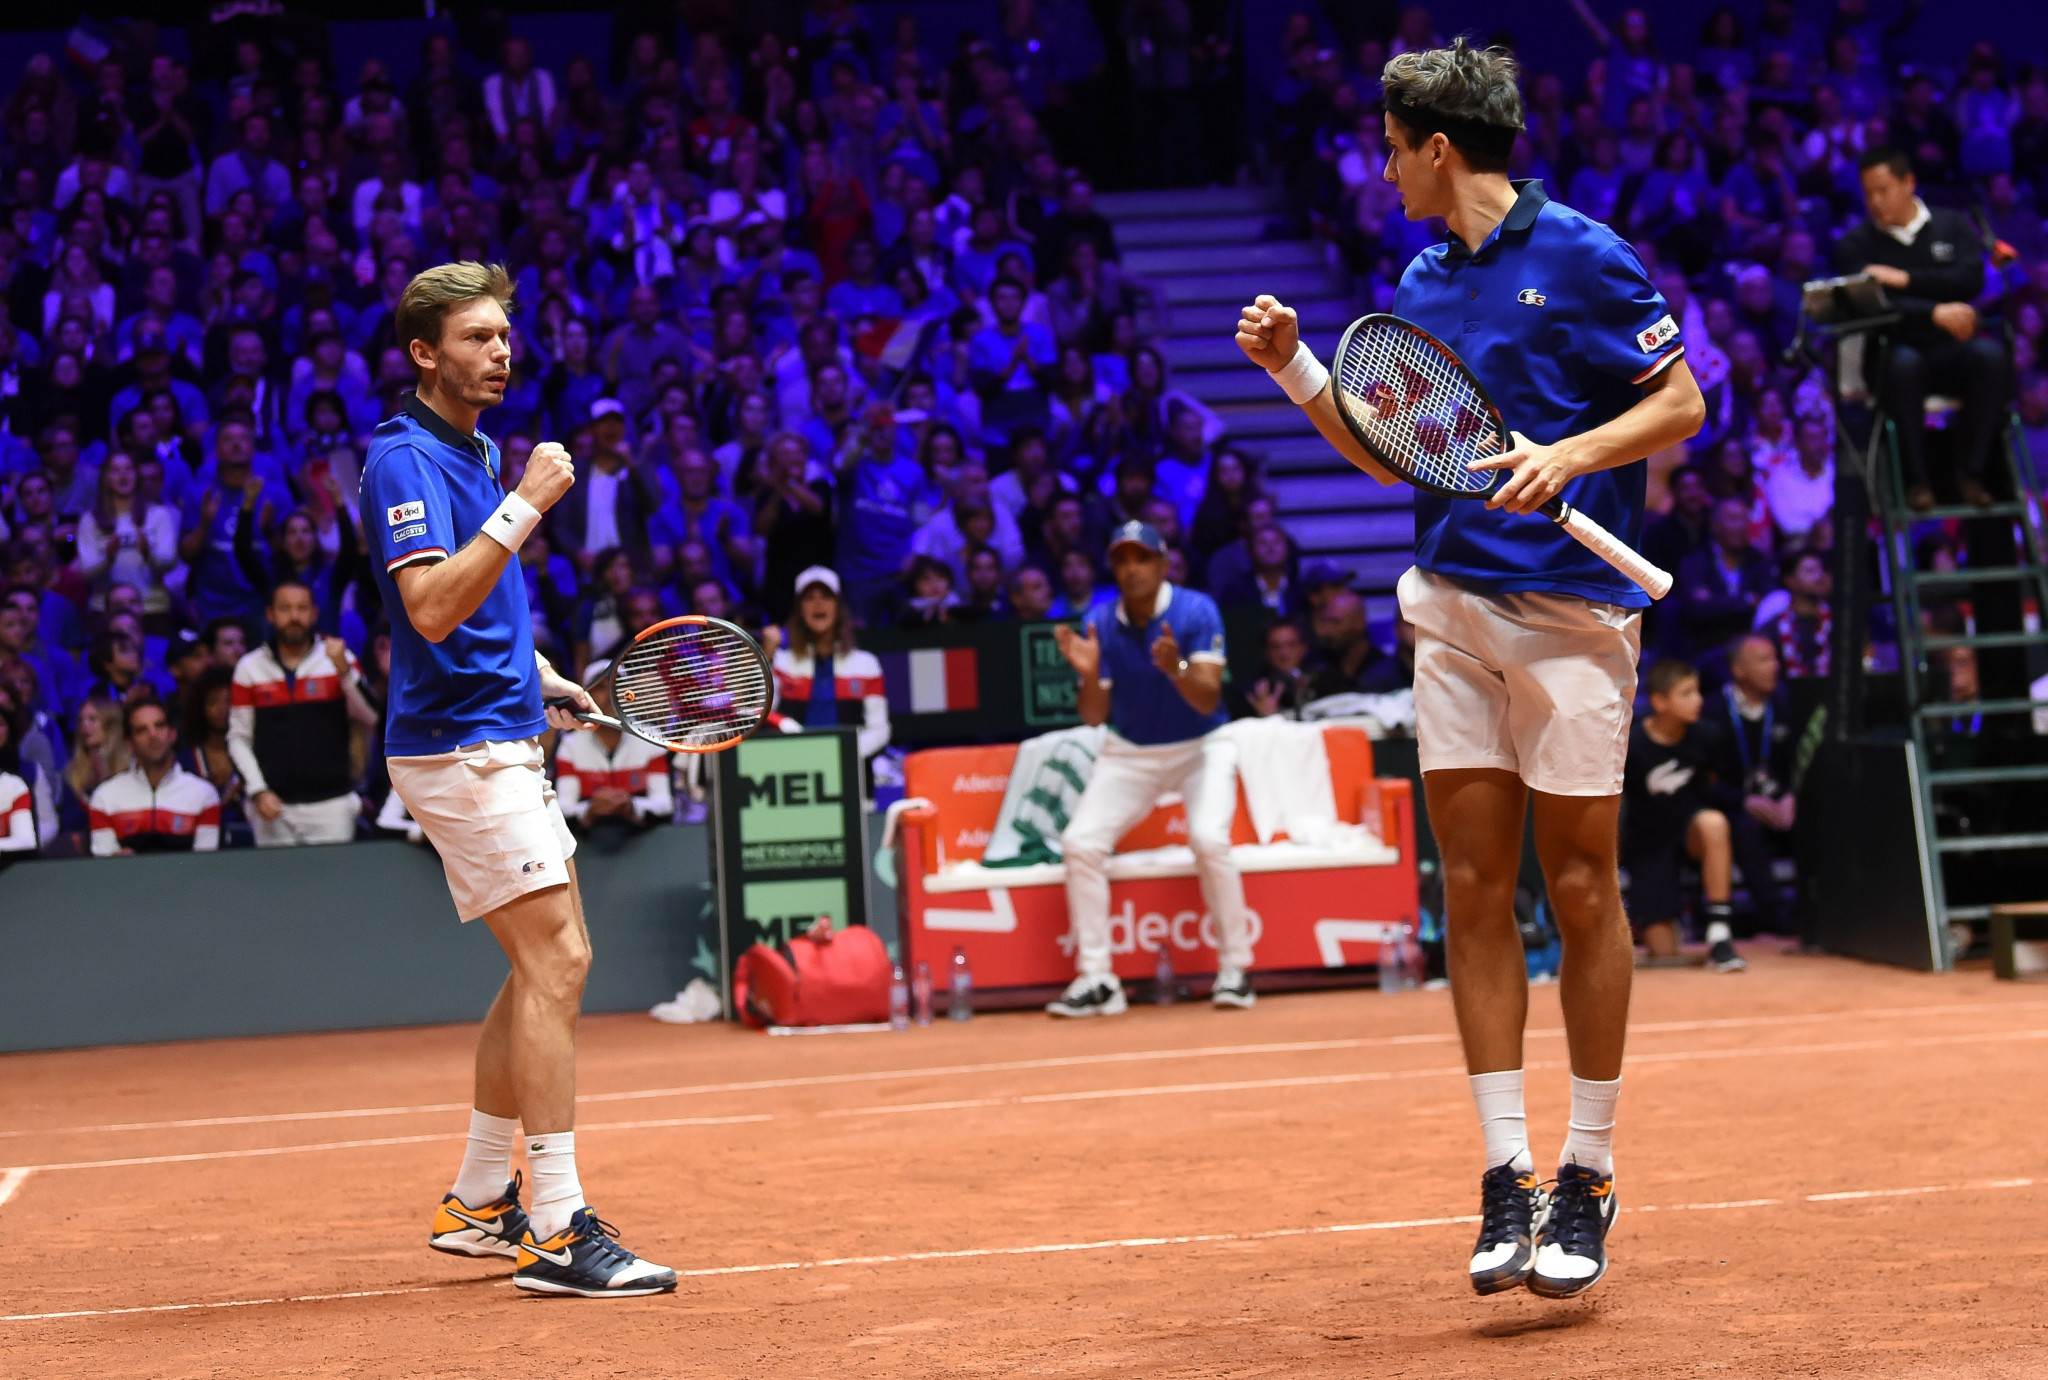 France's Nicolas Mahut and Pierre-Hugues Herbert won the doubles fixture to force a third day of competition a the Davis Cup in Lille ©Getty Images